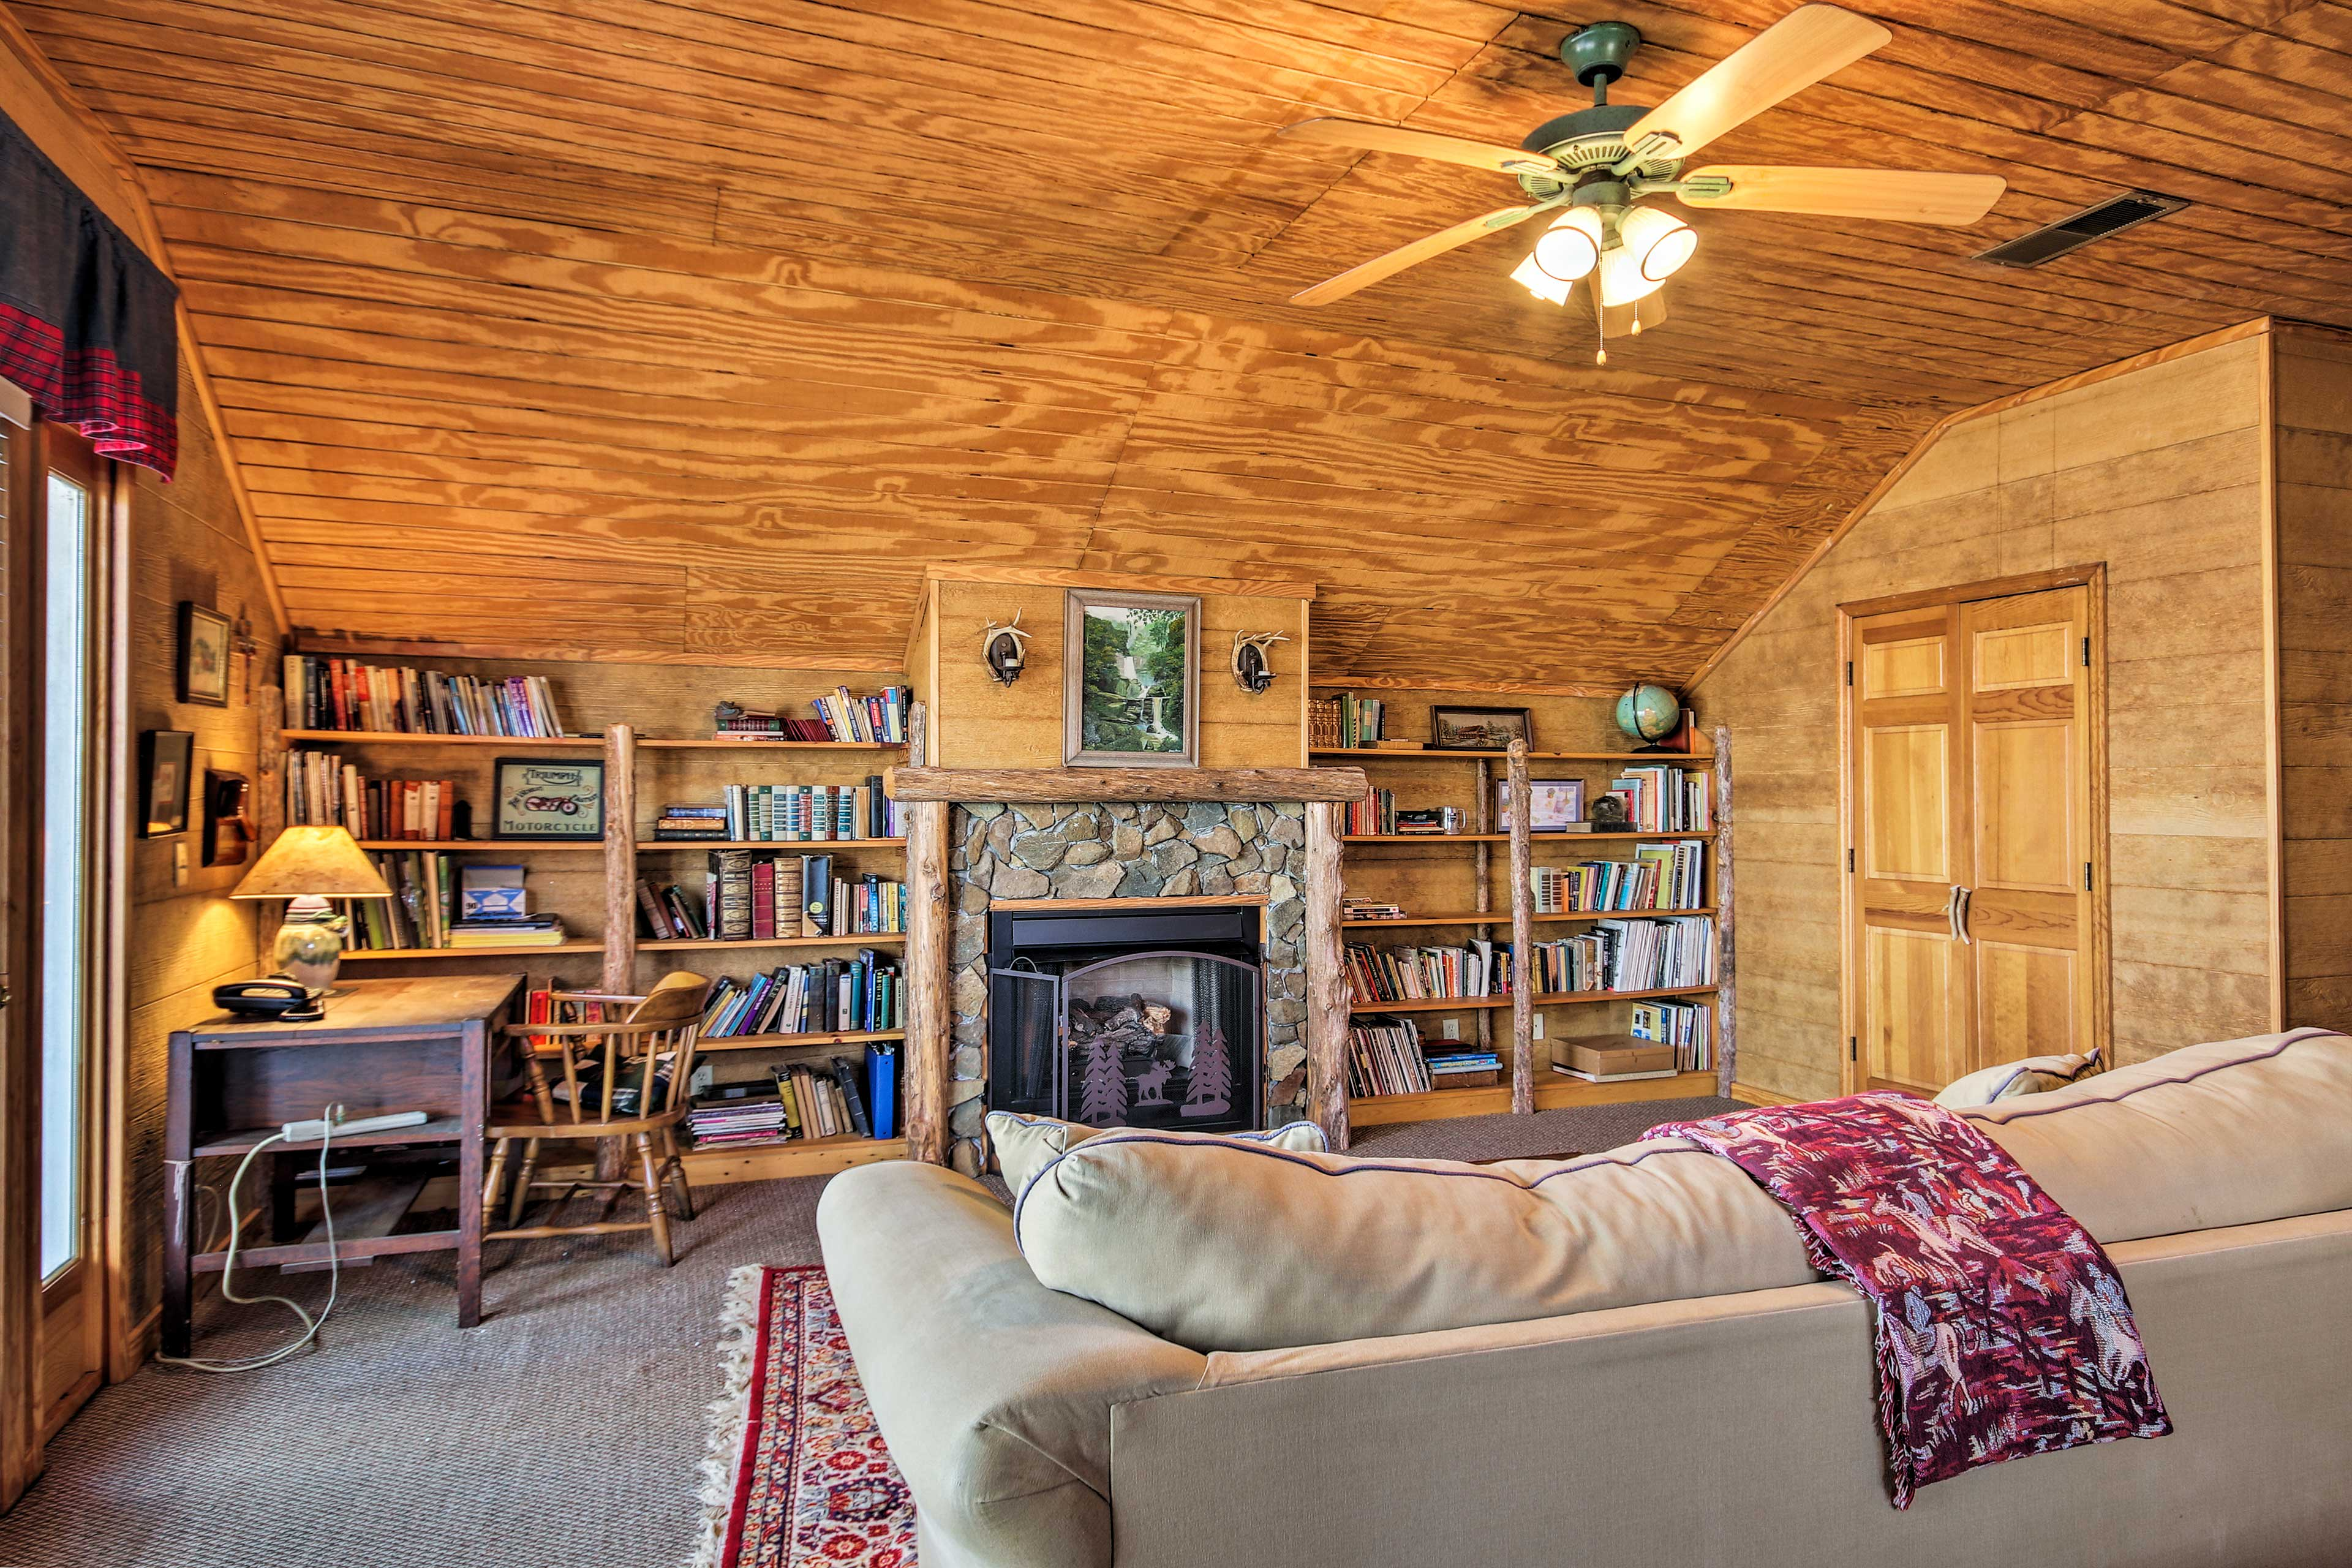 The master bedroom has a fireplace, desk, and a collection of books.